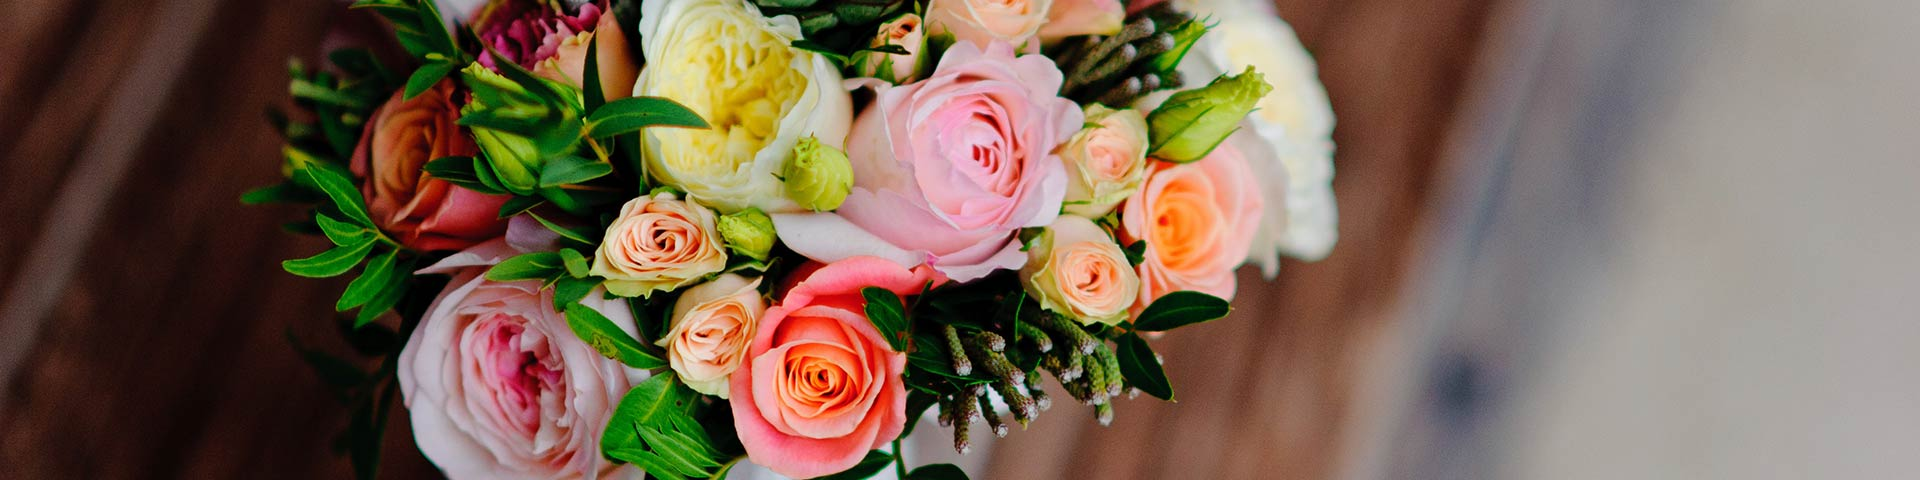 Flower Arrangement & Bridal Bouquet